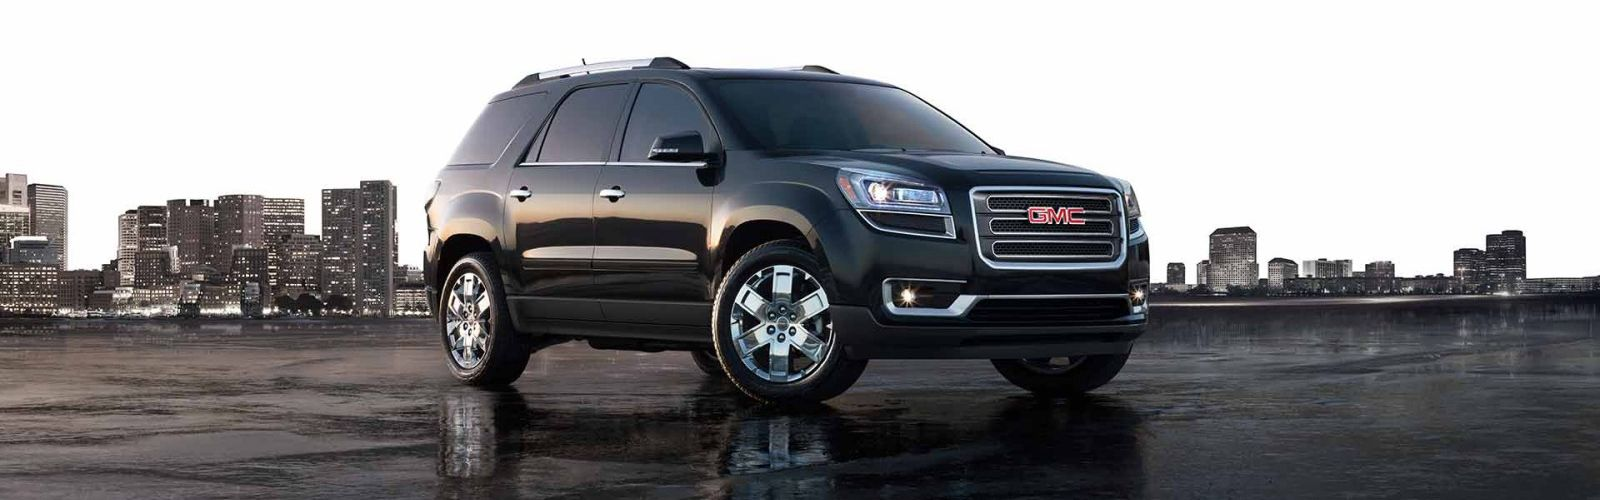 2017 gmc acadia limited for sale near youngstown oh. Black Bedroom Furniture Sets. Home Design Ideas